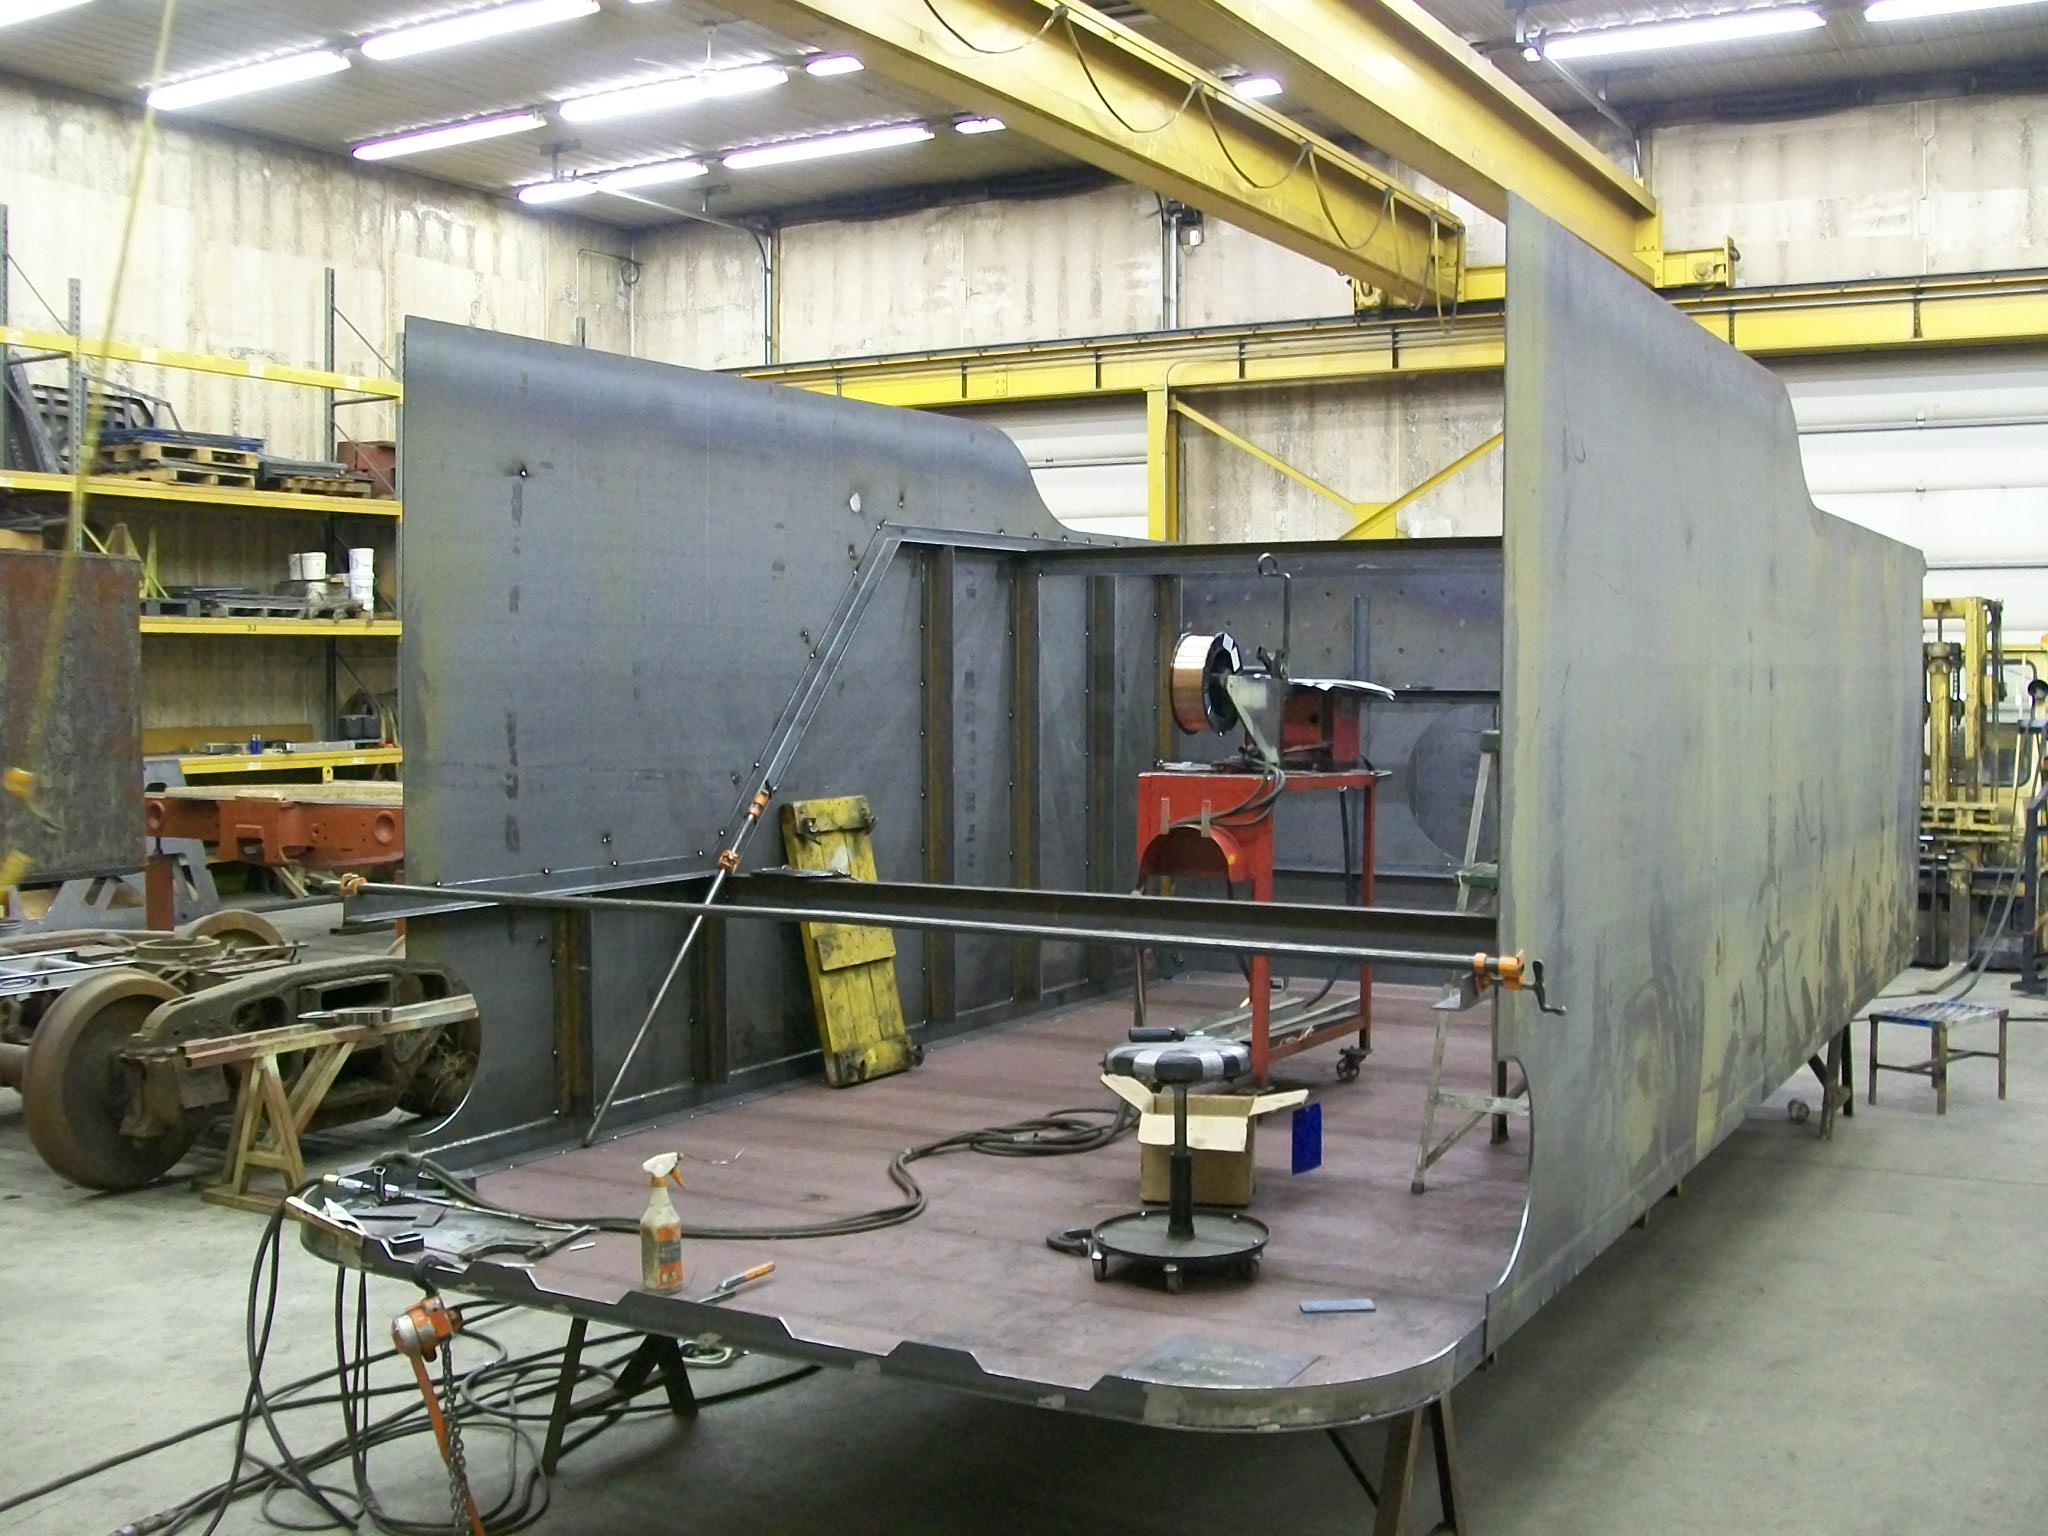 C&NW 1385 new tender tank under construction at DRM Industries. February 2012. Photos by DRM Industries